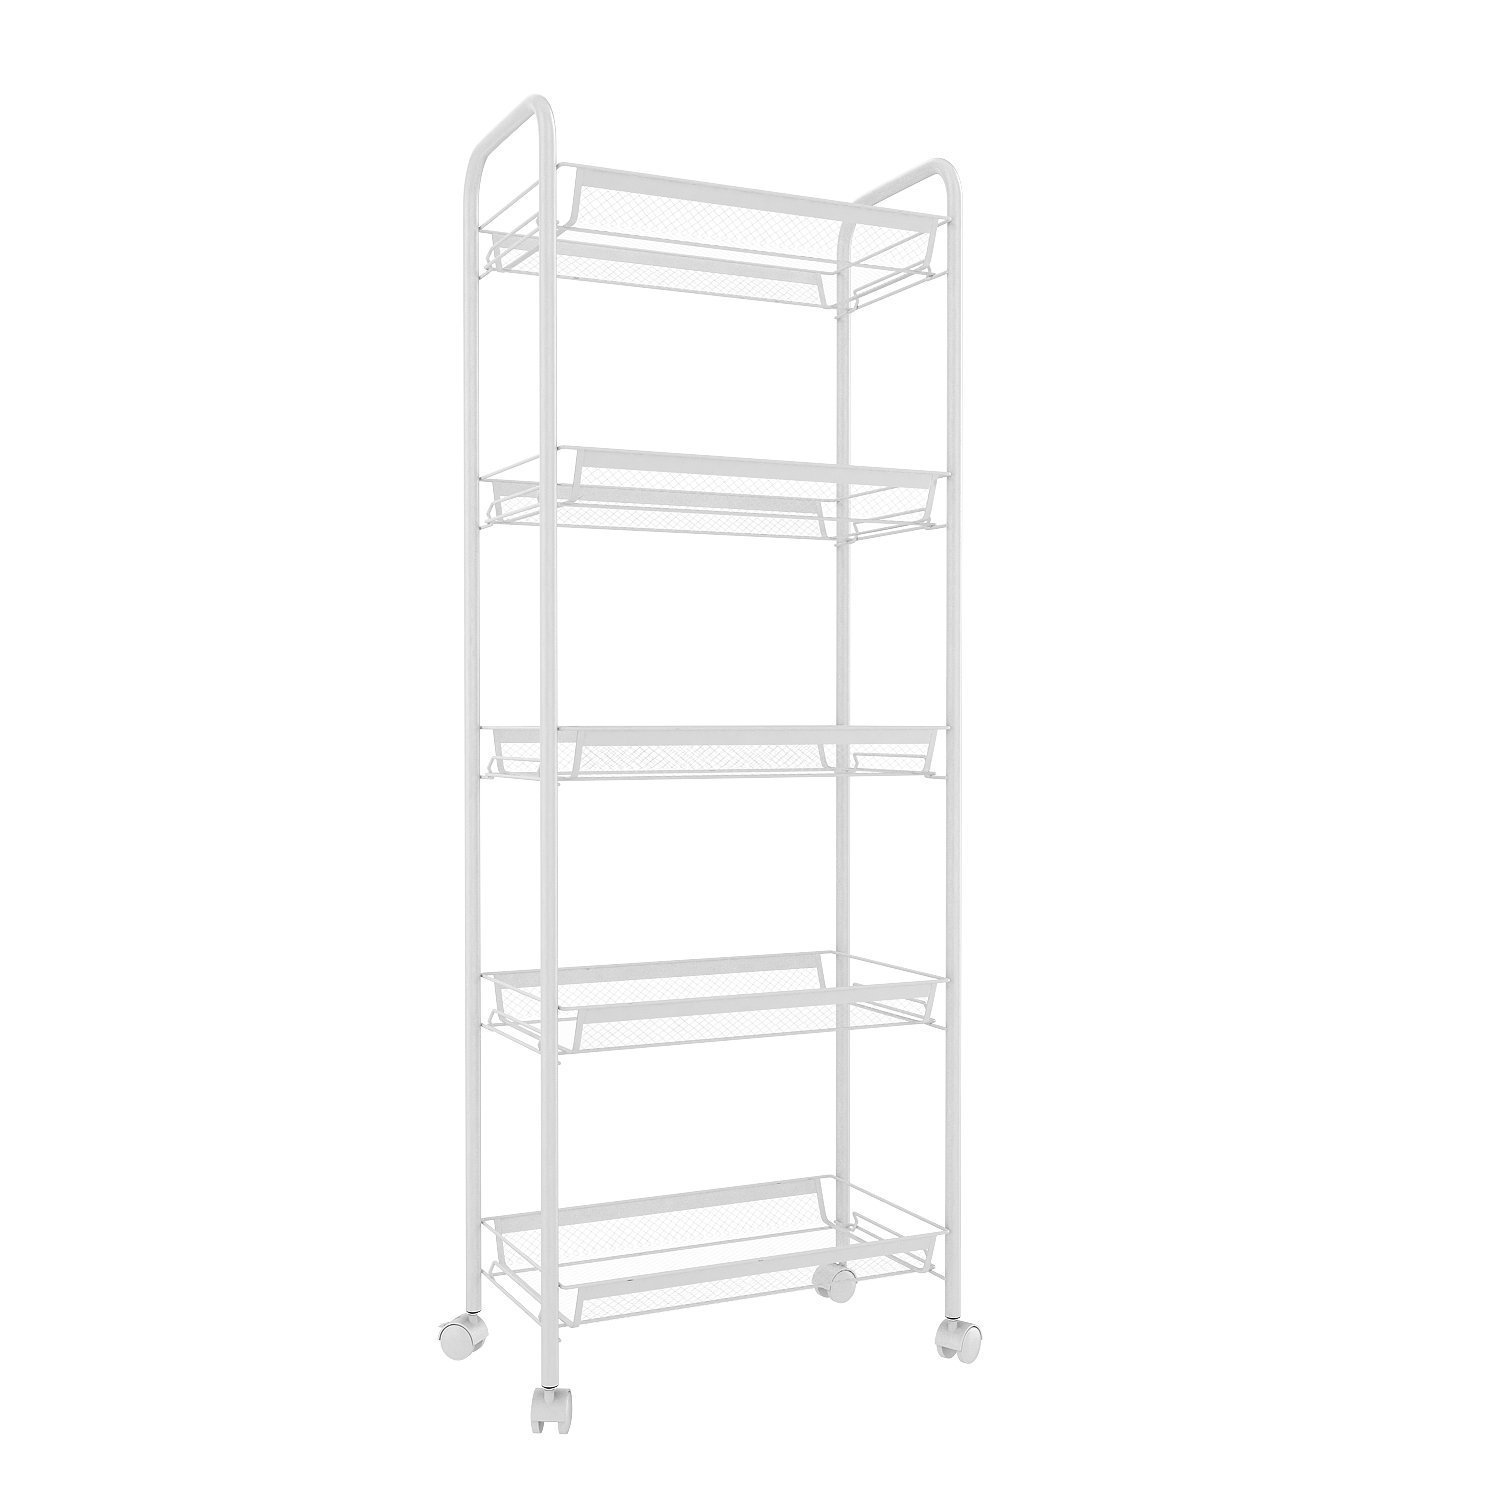 Leoneva Deluxe Heavy Duty Multi-Purpose 3/4/5-Tier Wire Mesh Rolling Cart for Home/Kitchen/Bathroom, Serving Moving Storage Utility Organization Rack with Metal Handle and Wheels (5-Tier, White)